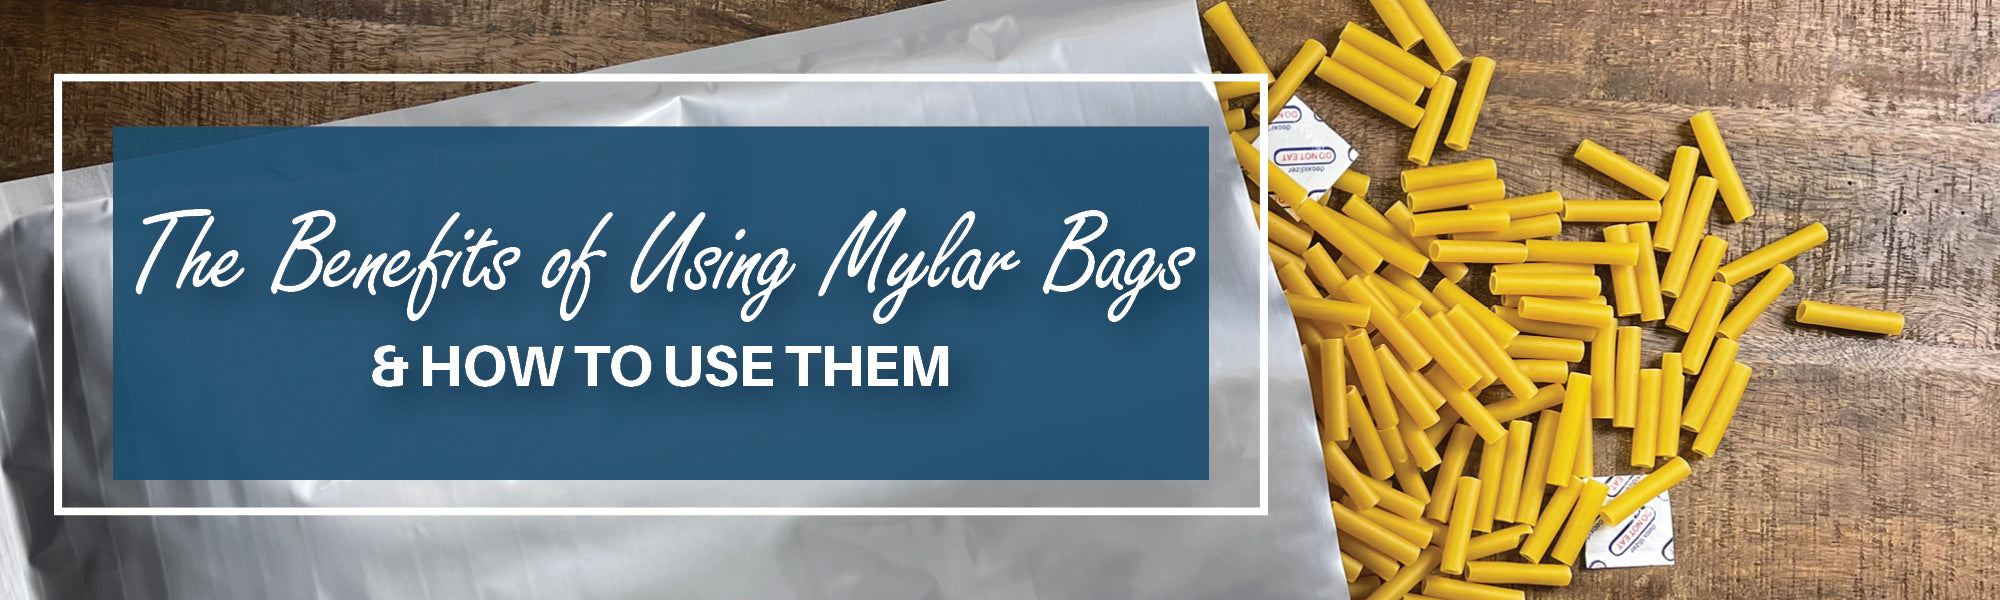 The Benefits of Using Mylar Bags & How to Use Them